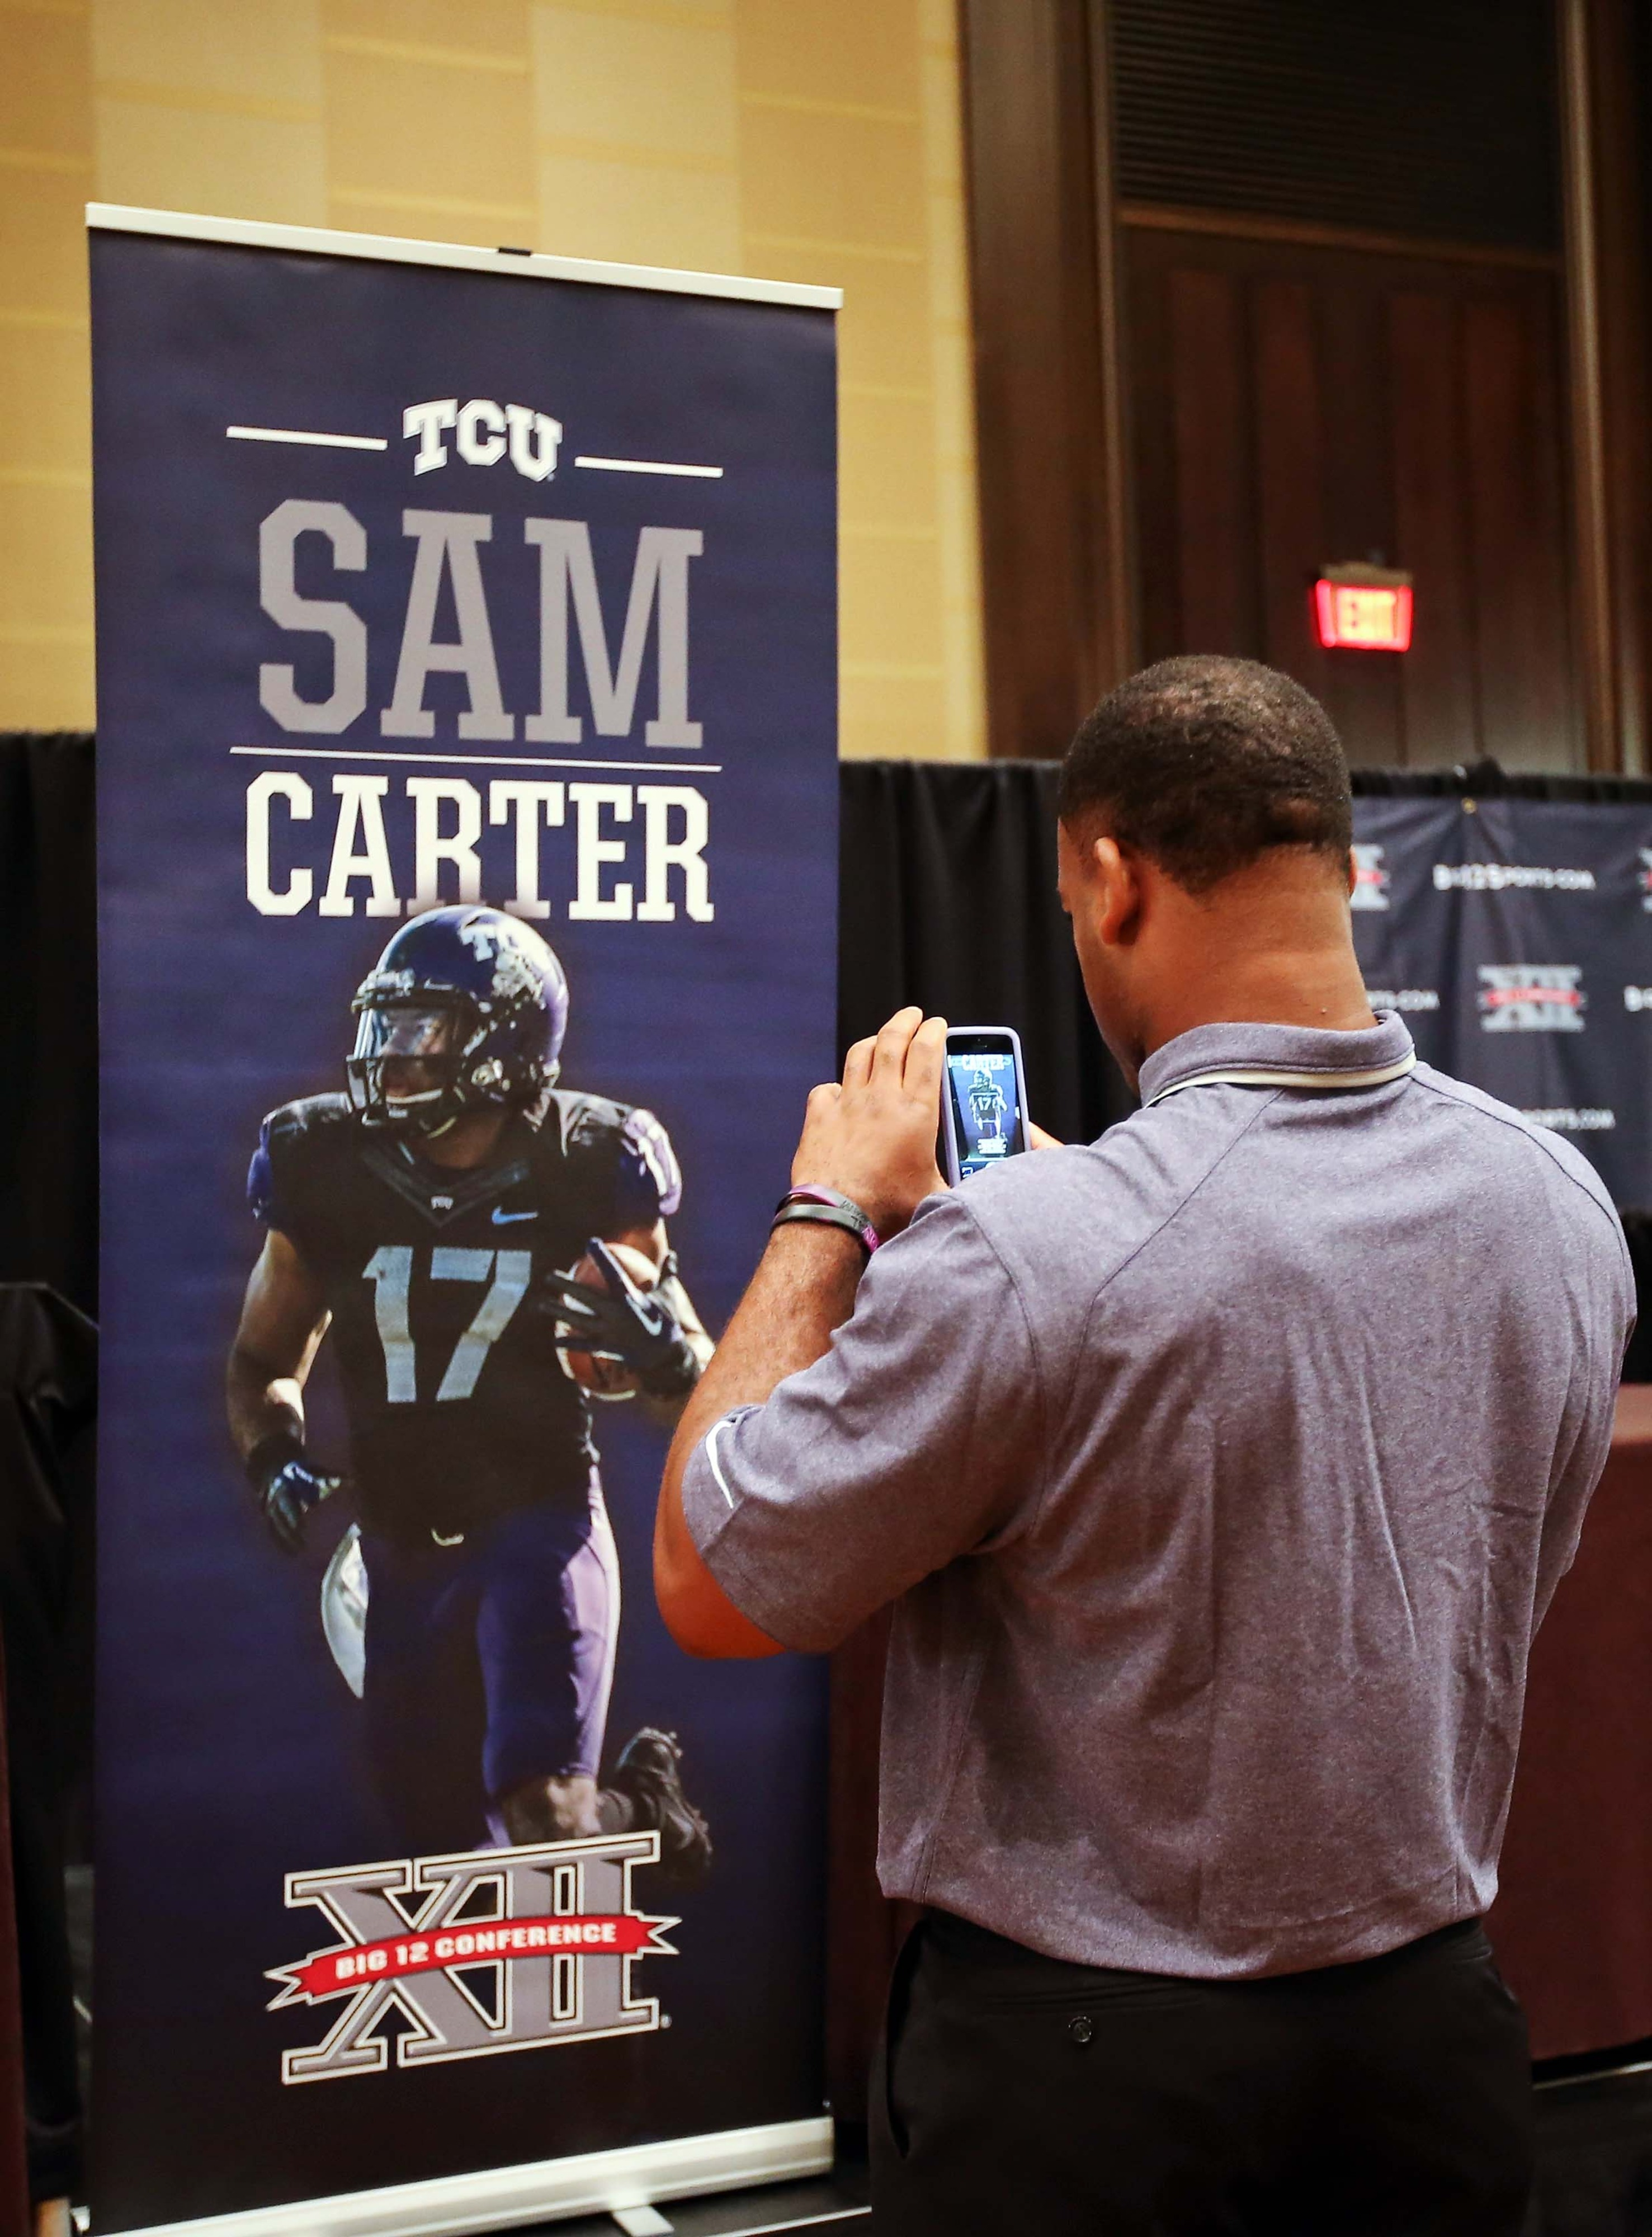 Sam Carter taking a picture of Sam Carter.